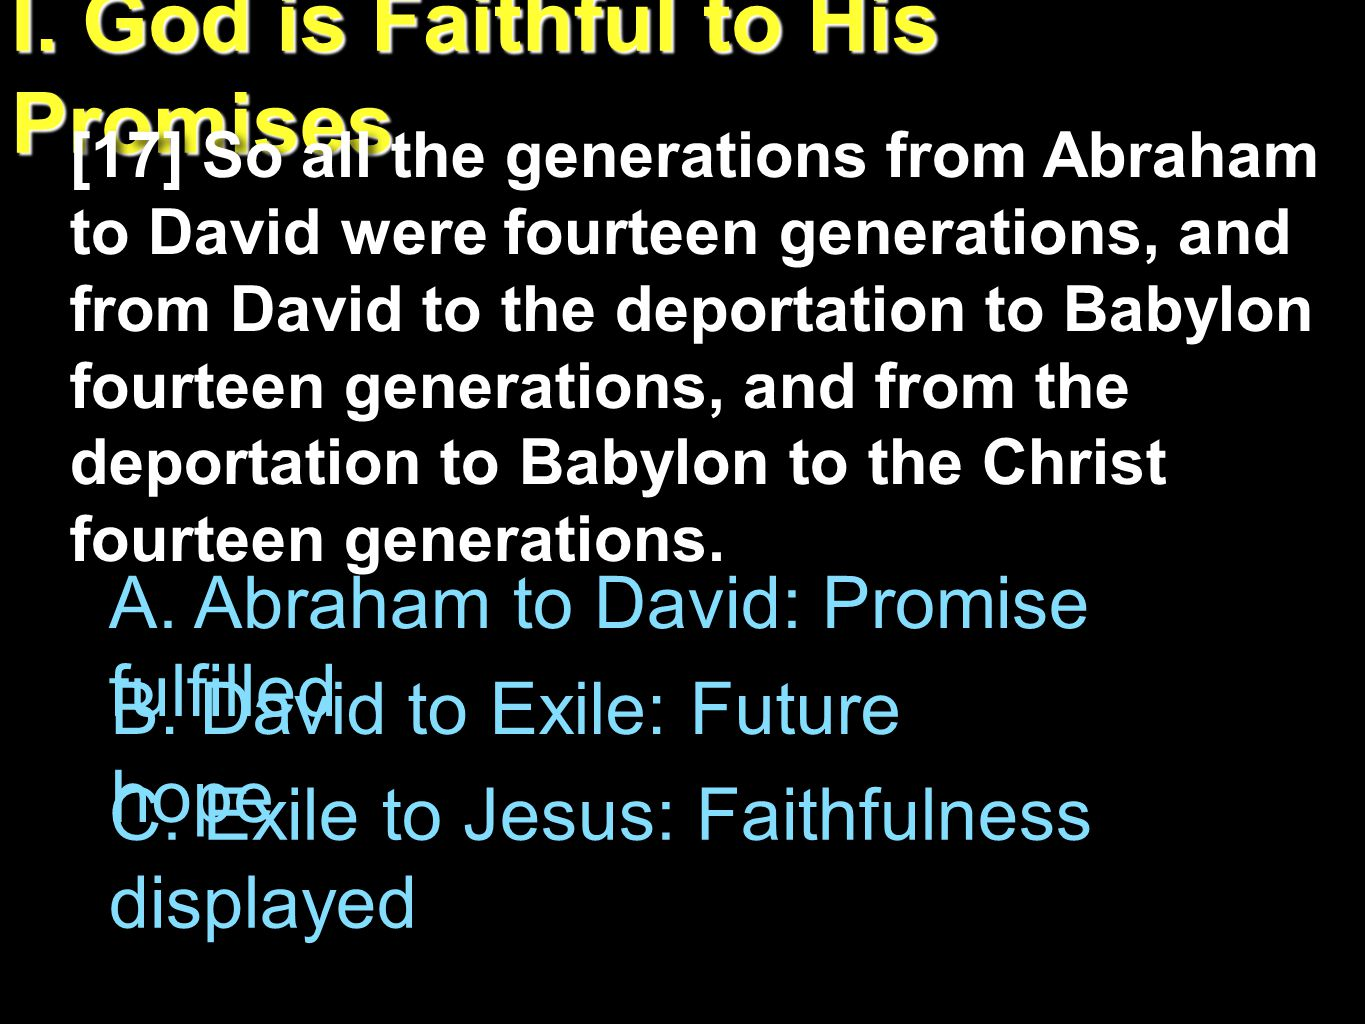 Joshua 21:45 Not one word of all the good promises that the LORD had made to the house of Israel had failed; all came to pass.